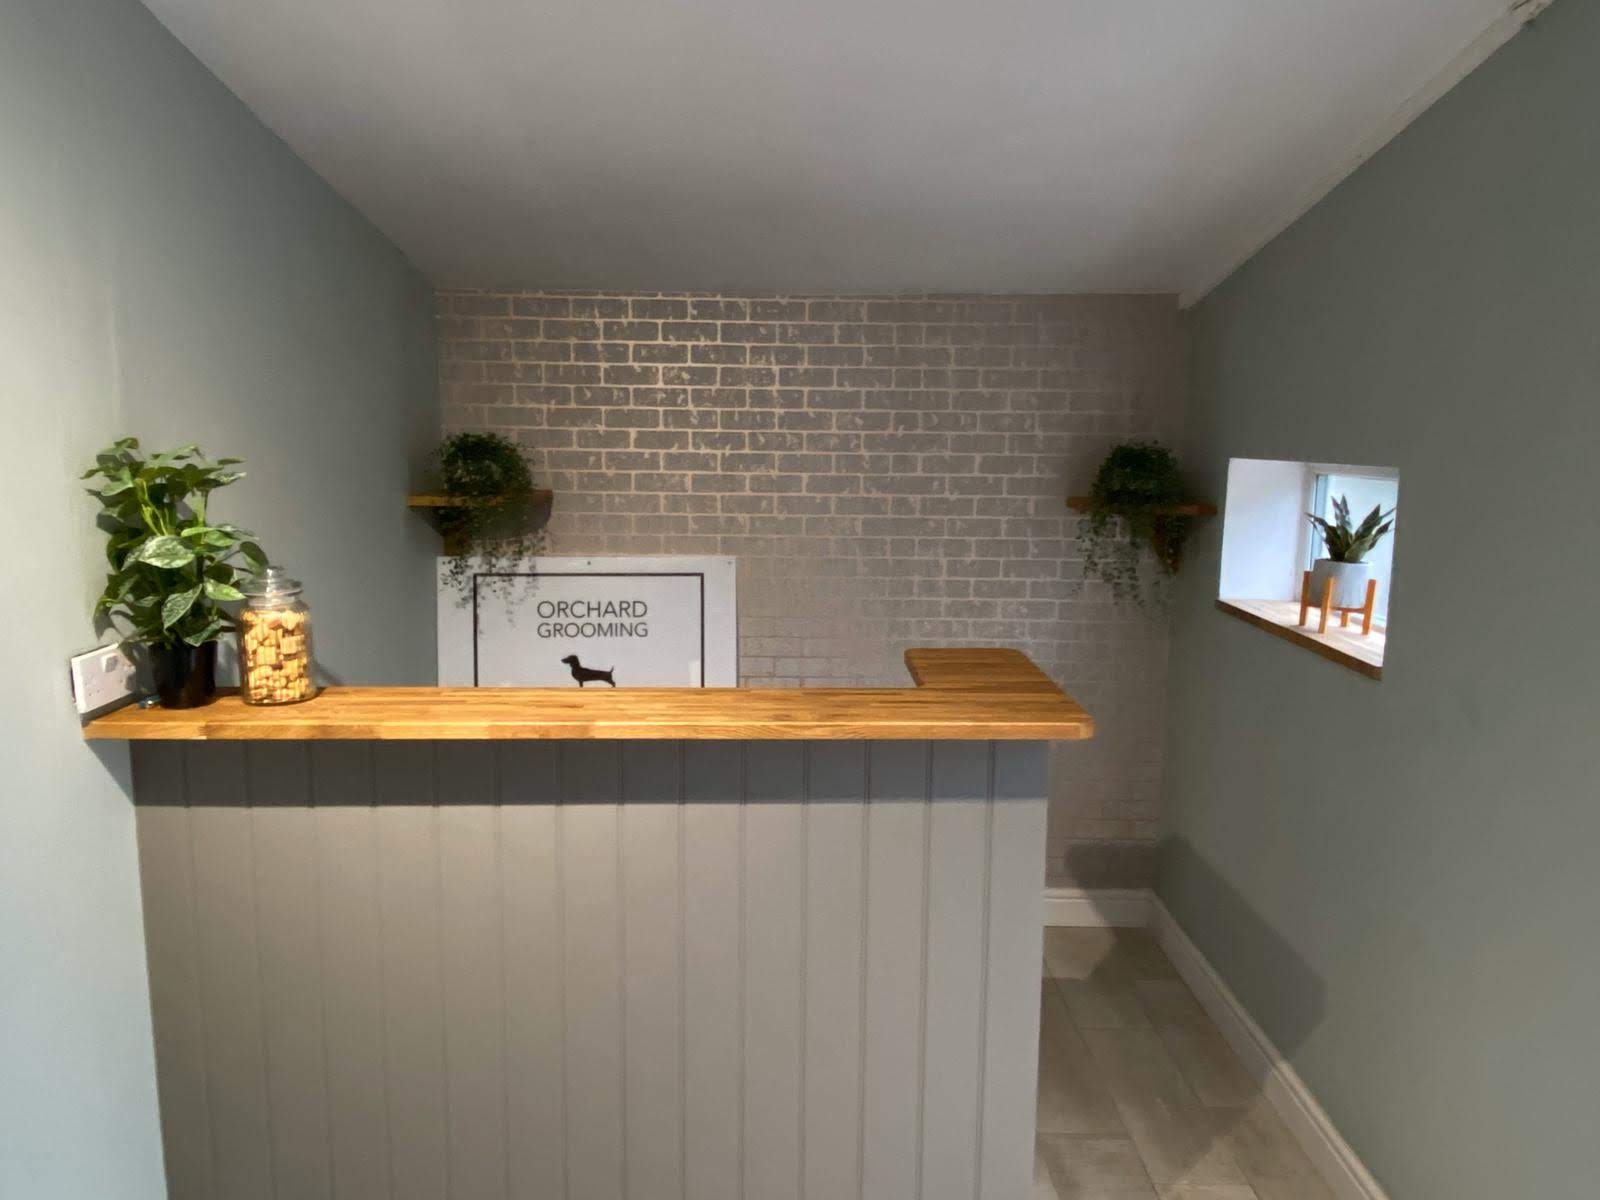 Orchard Dog Grooming Reception in Southam Cheltenham